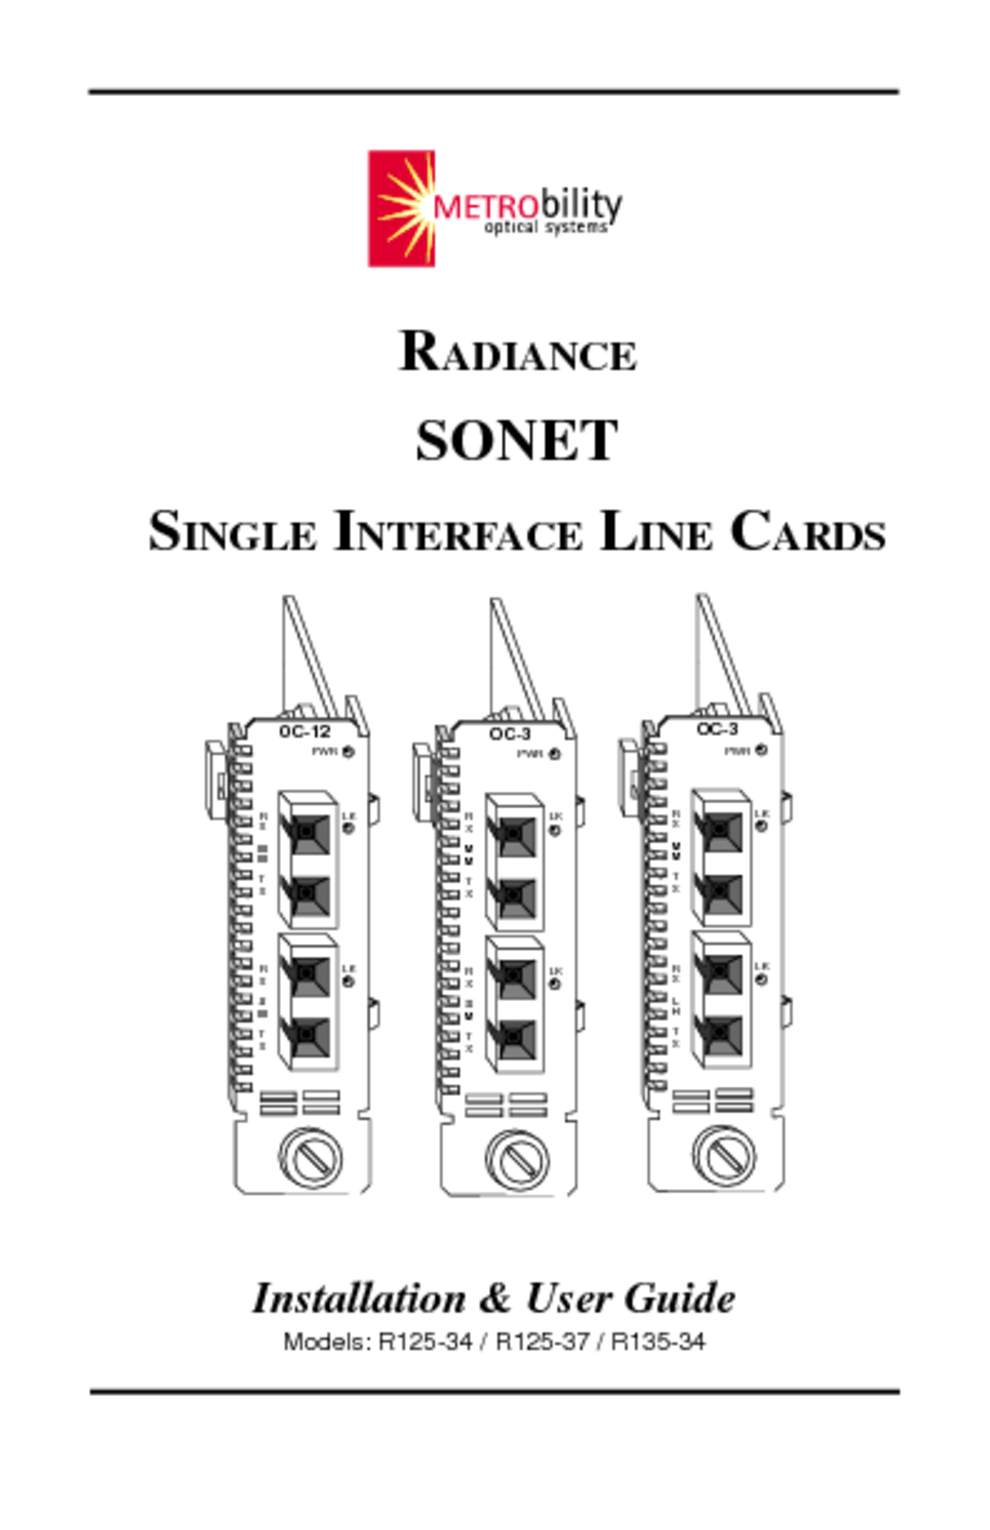 Radiance Sonet Single Interface Line Cards R135-34 Manuals